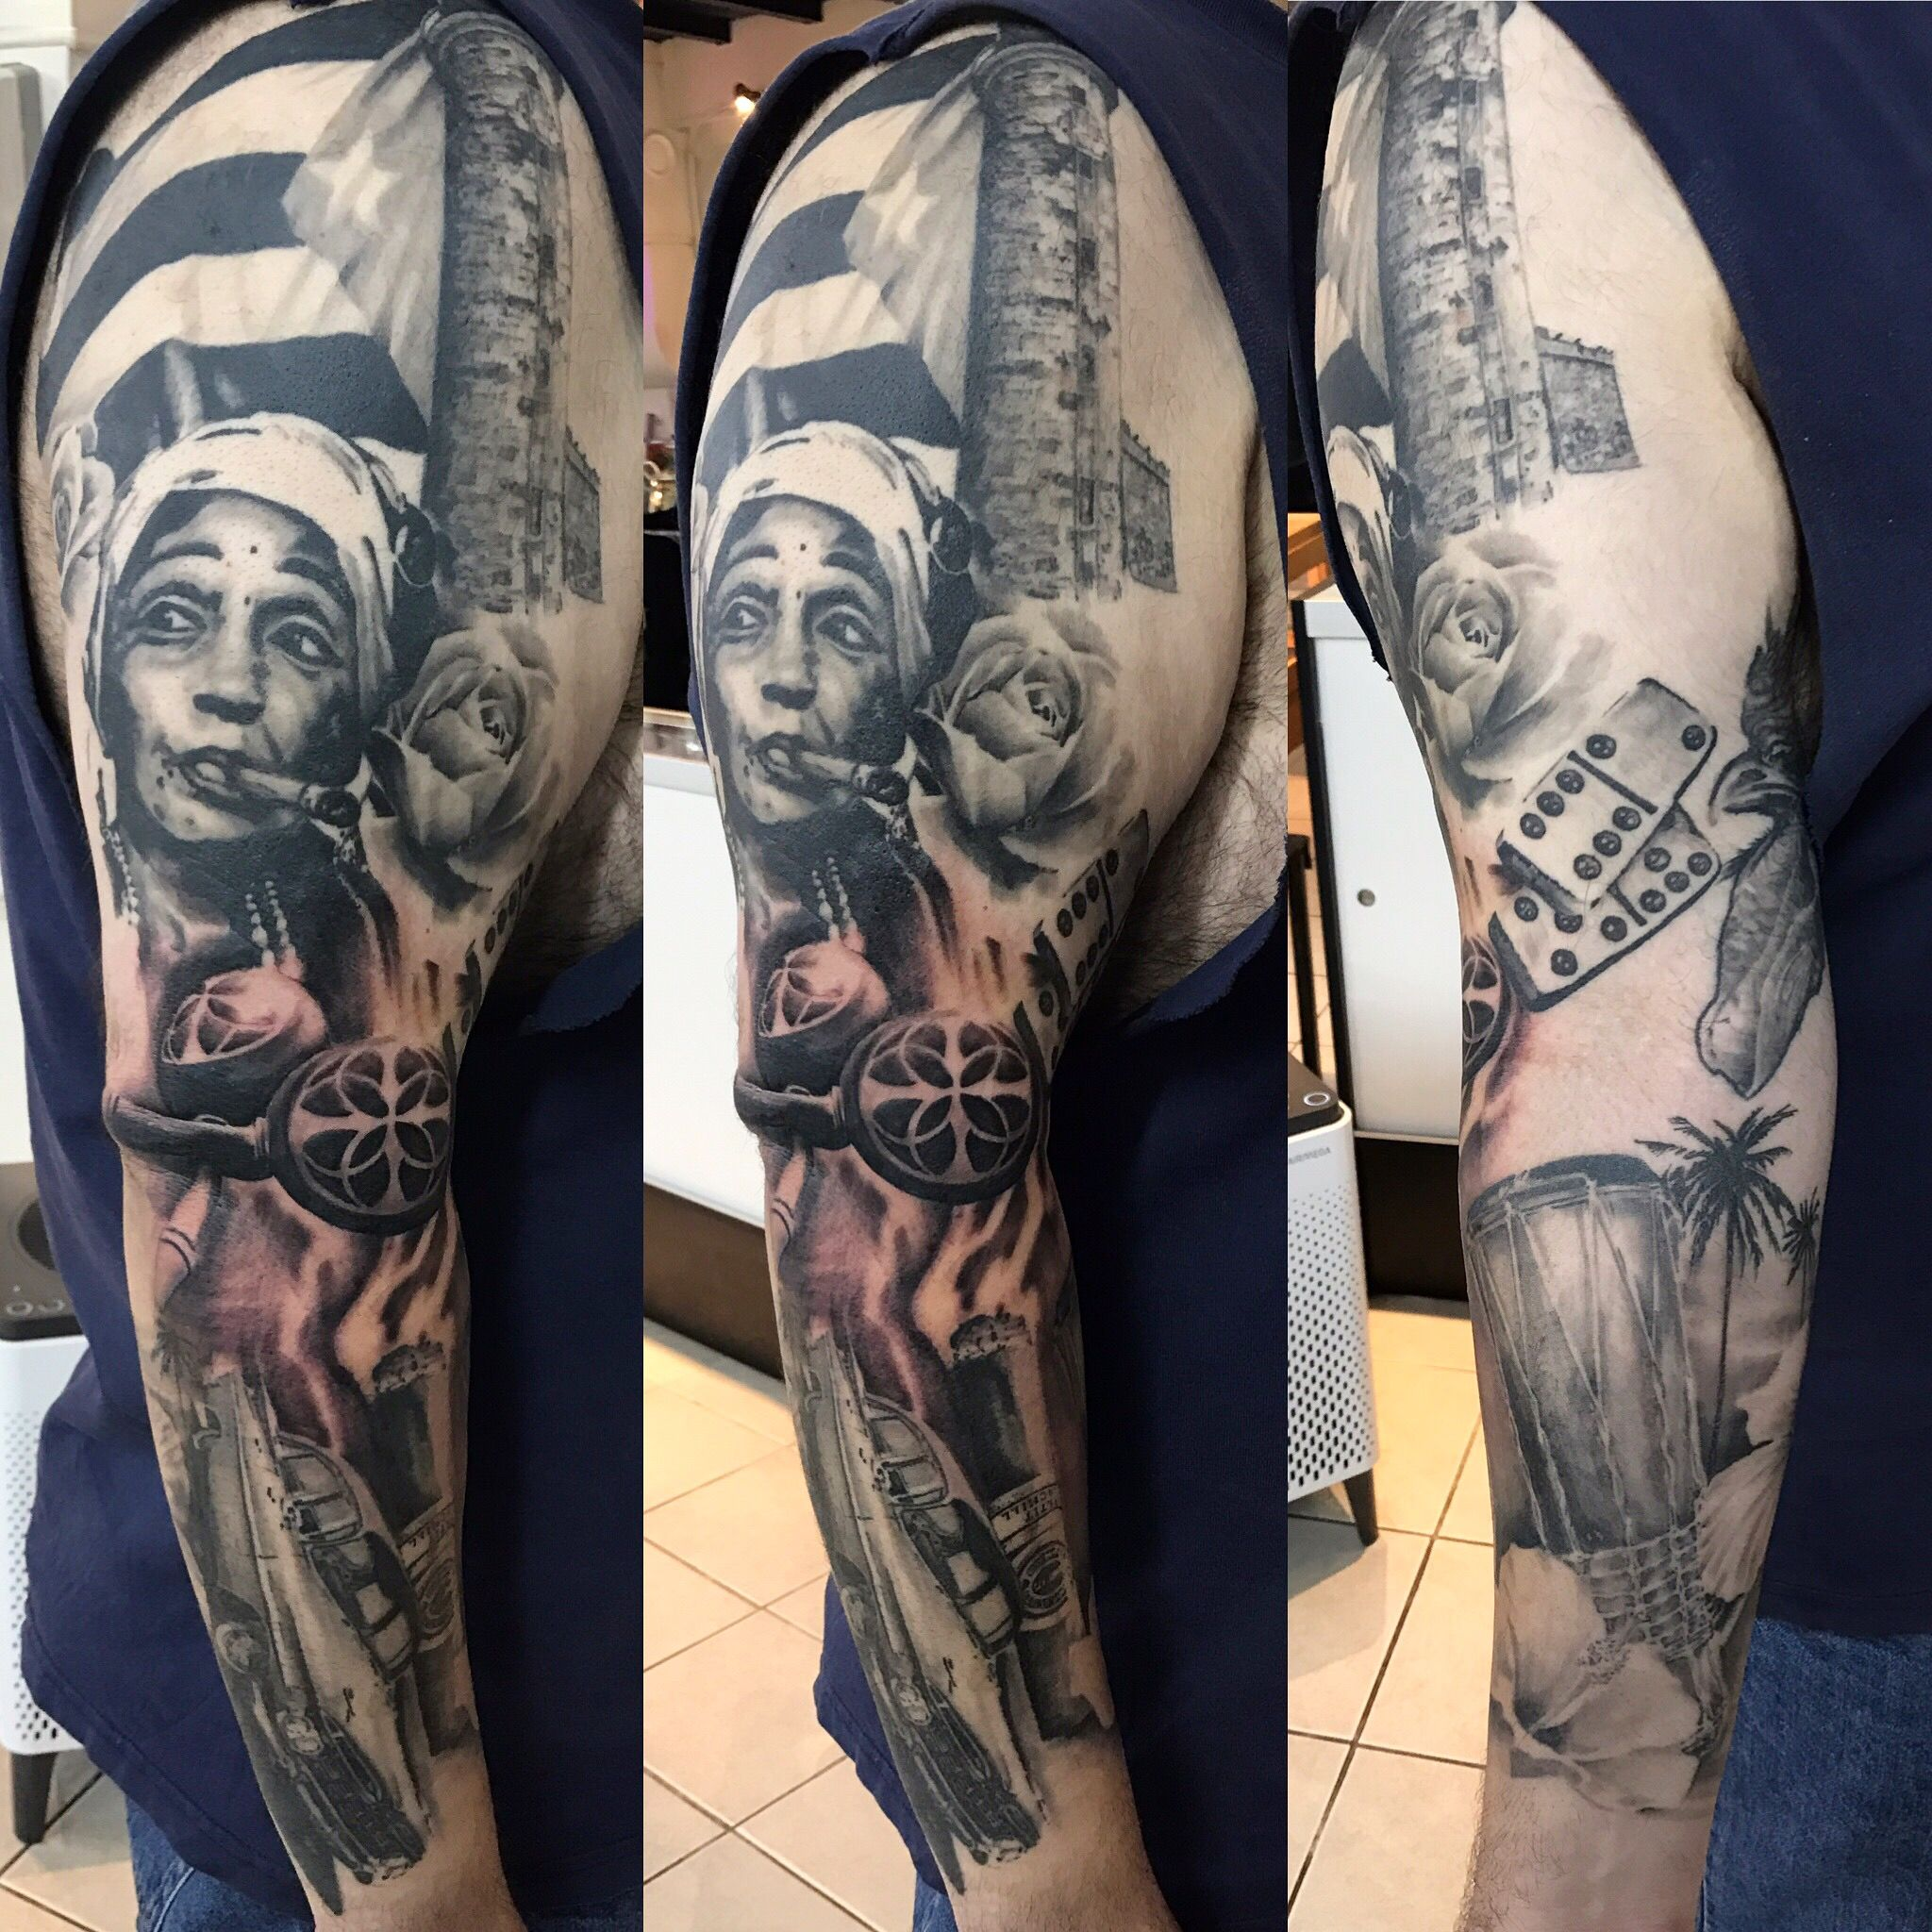 Pin By Jorge Valle On New Tattoos Flesh Tattoo Tattoos For Guys Cuban Tattoos